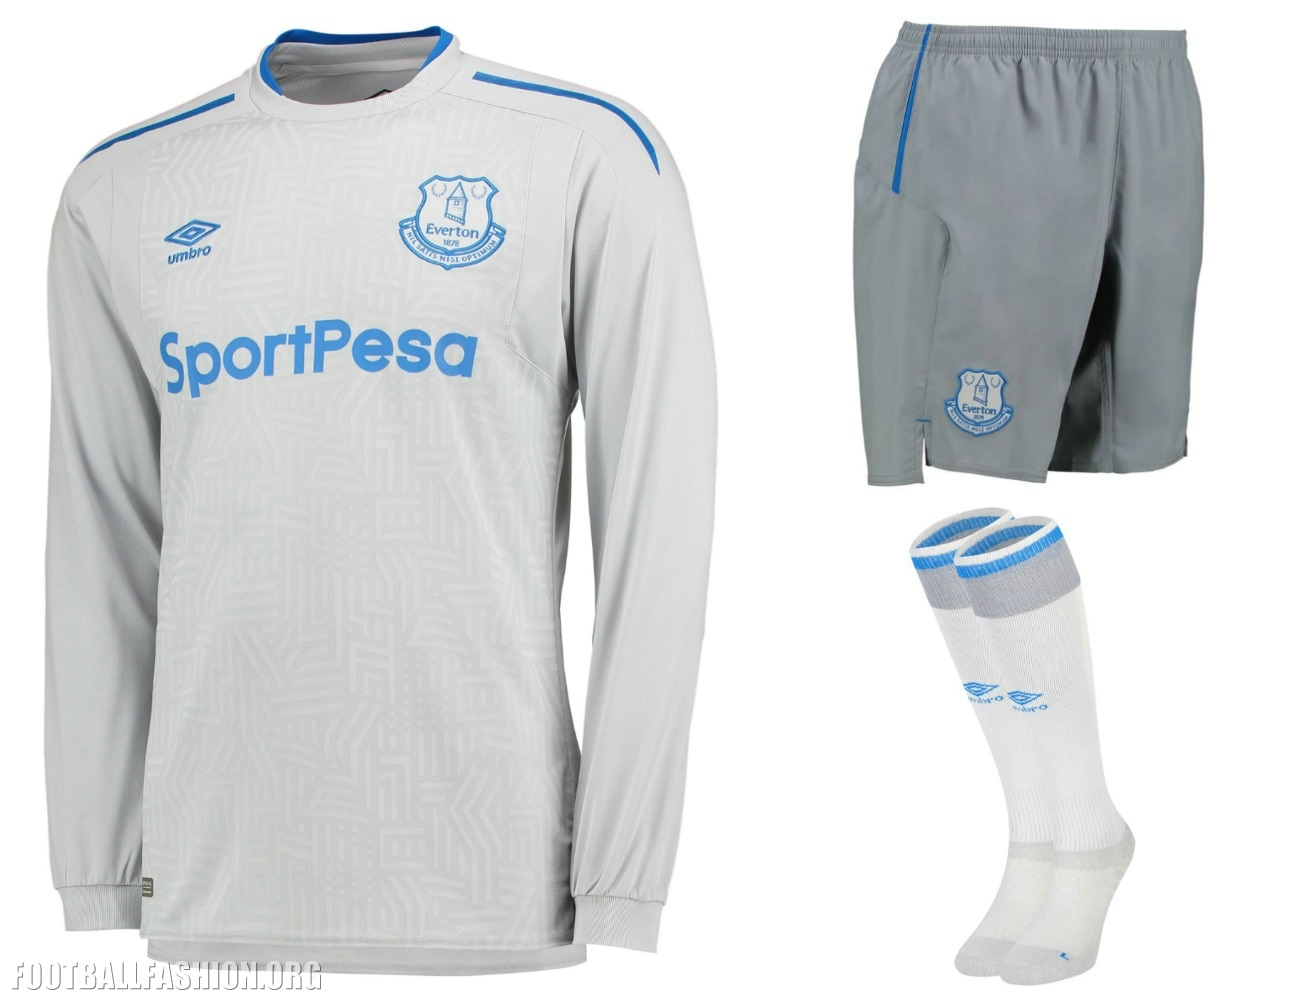 timeless design 8d7e7 6d0d8 Everton FC 2017/18 Umbro Away Kit - FOOTBALL FASHION.ORG